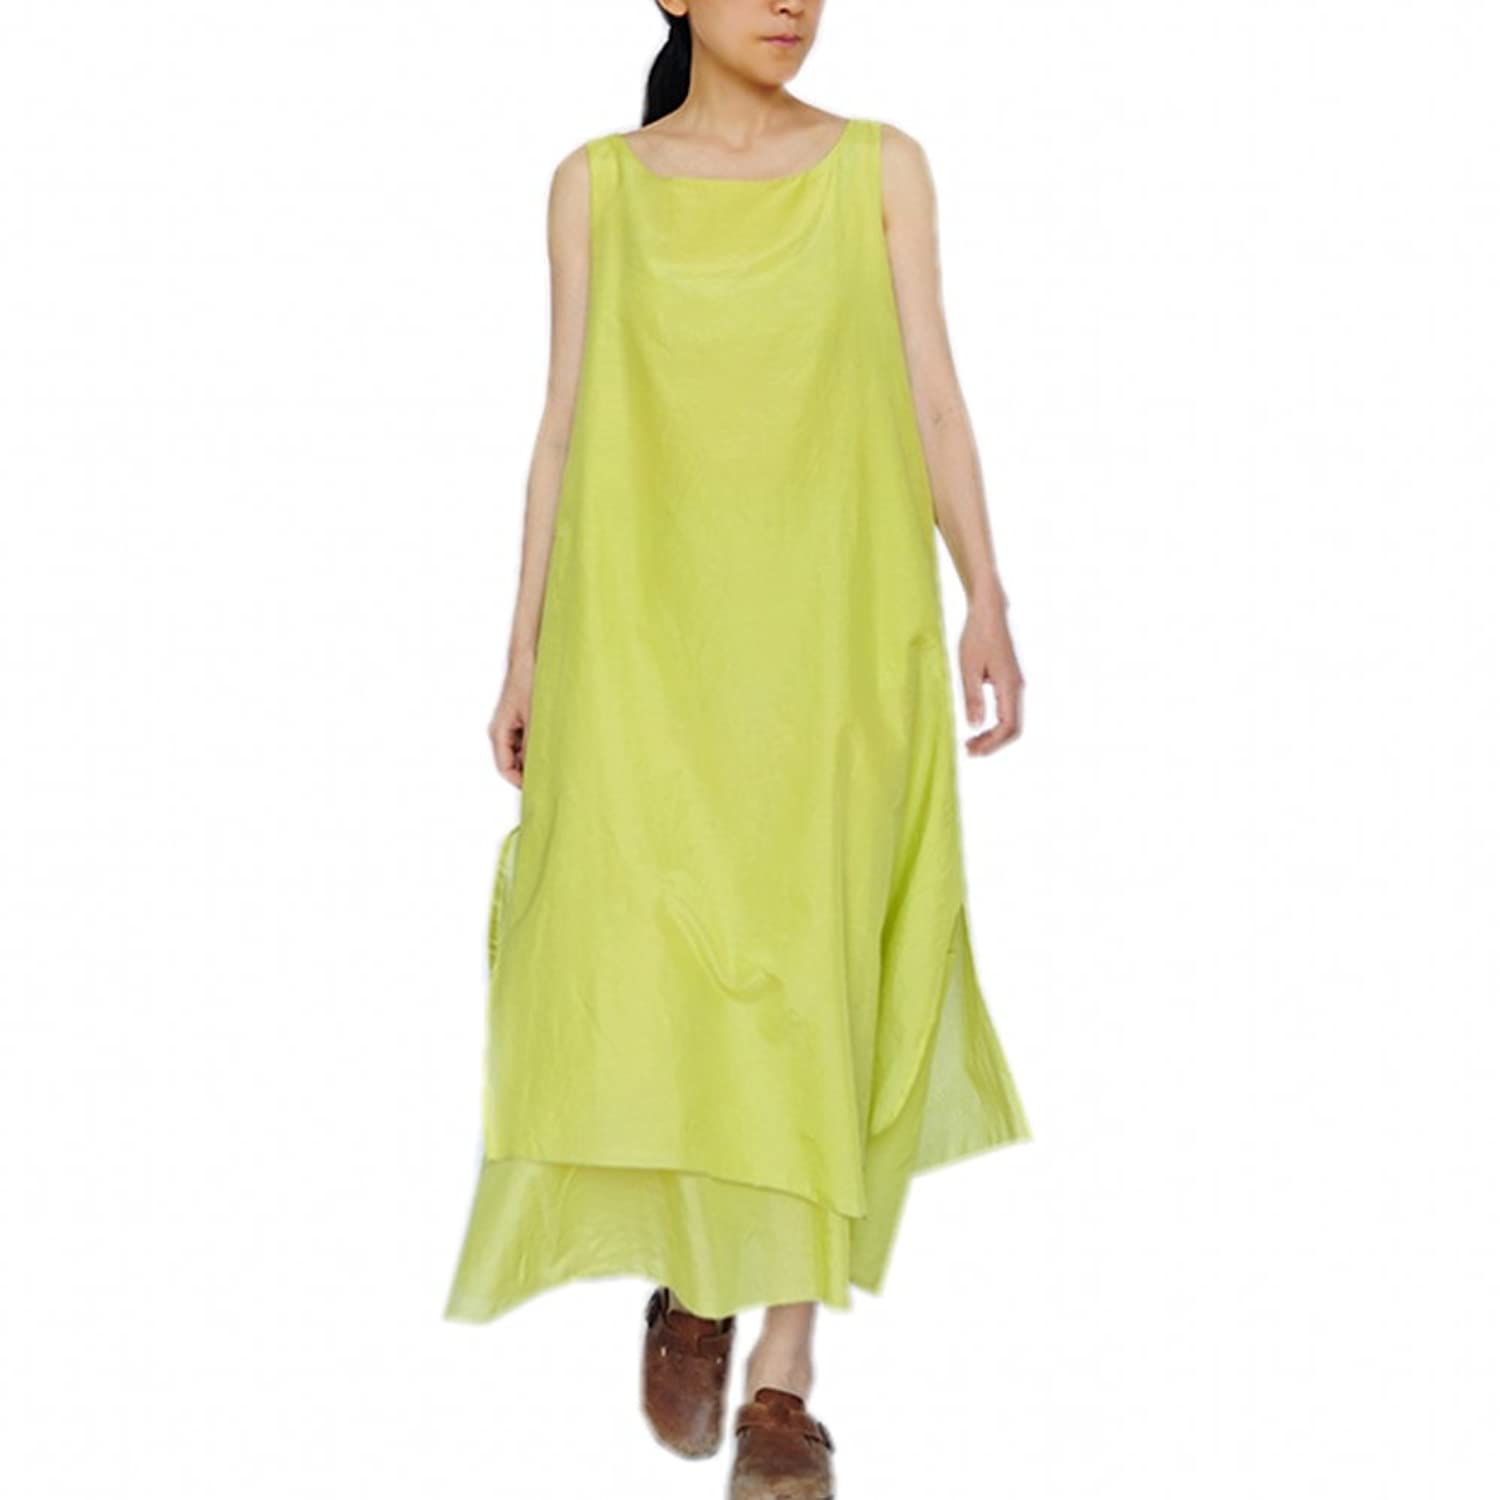 Katuo Women's Casual A-line Sundress Summer Two Layers